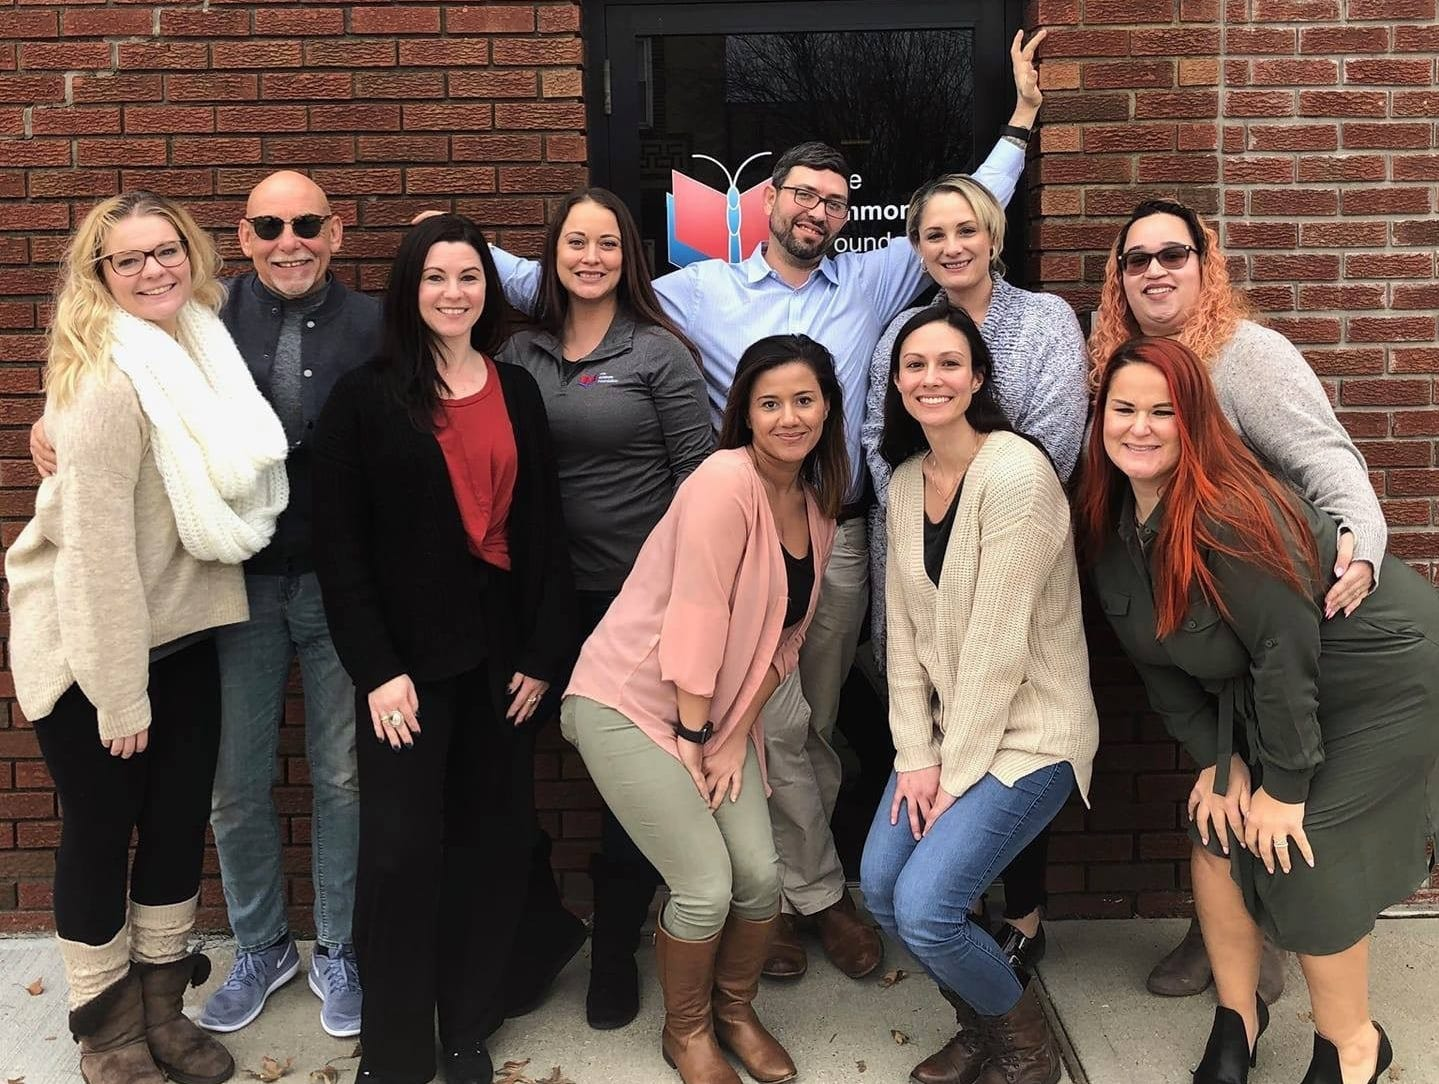 Having lived a life in addiction, Middlesex County's Cheyanne Curtin, 25, (left) is now living a life in recovery and is a lead Empowerment Coach with the Linden-based Ammon Foundation.